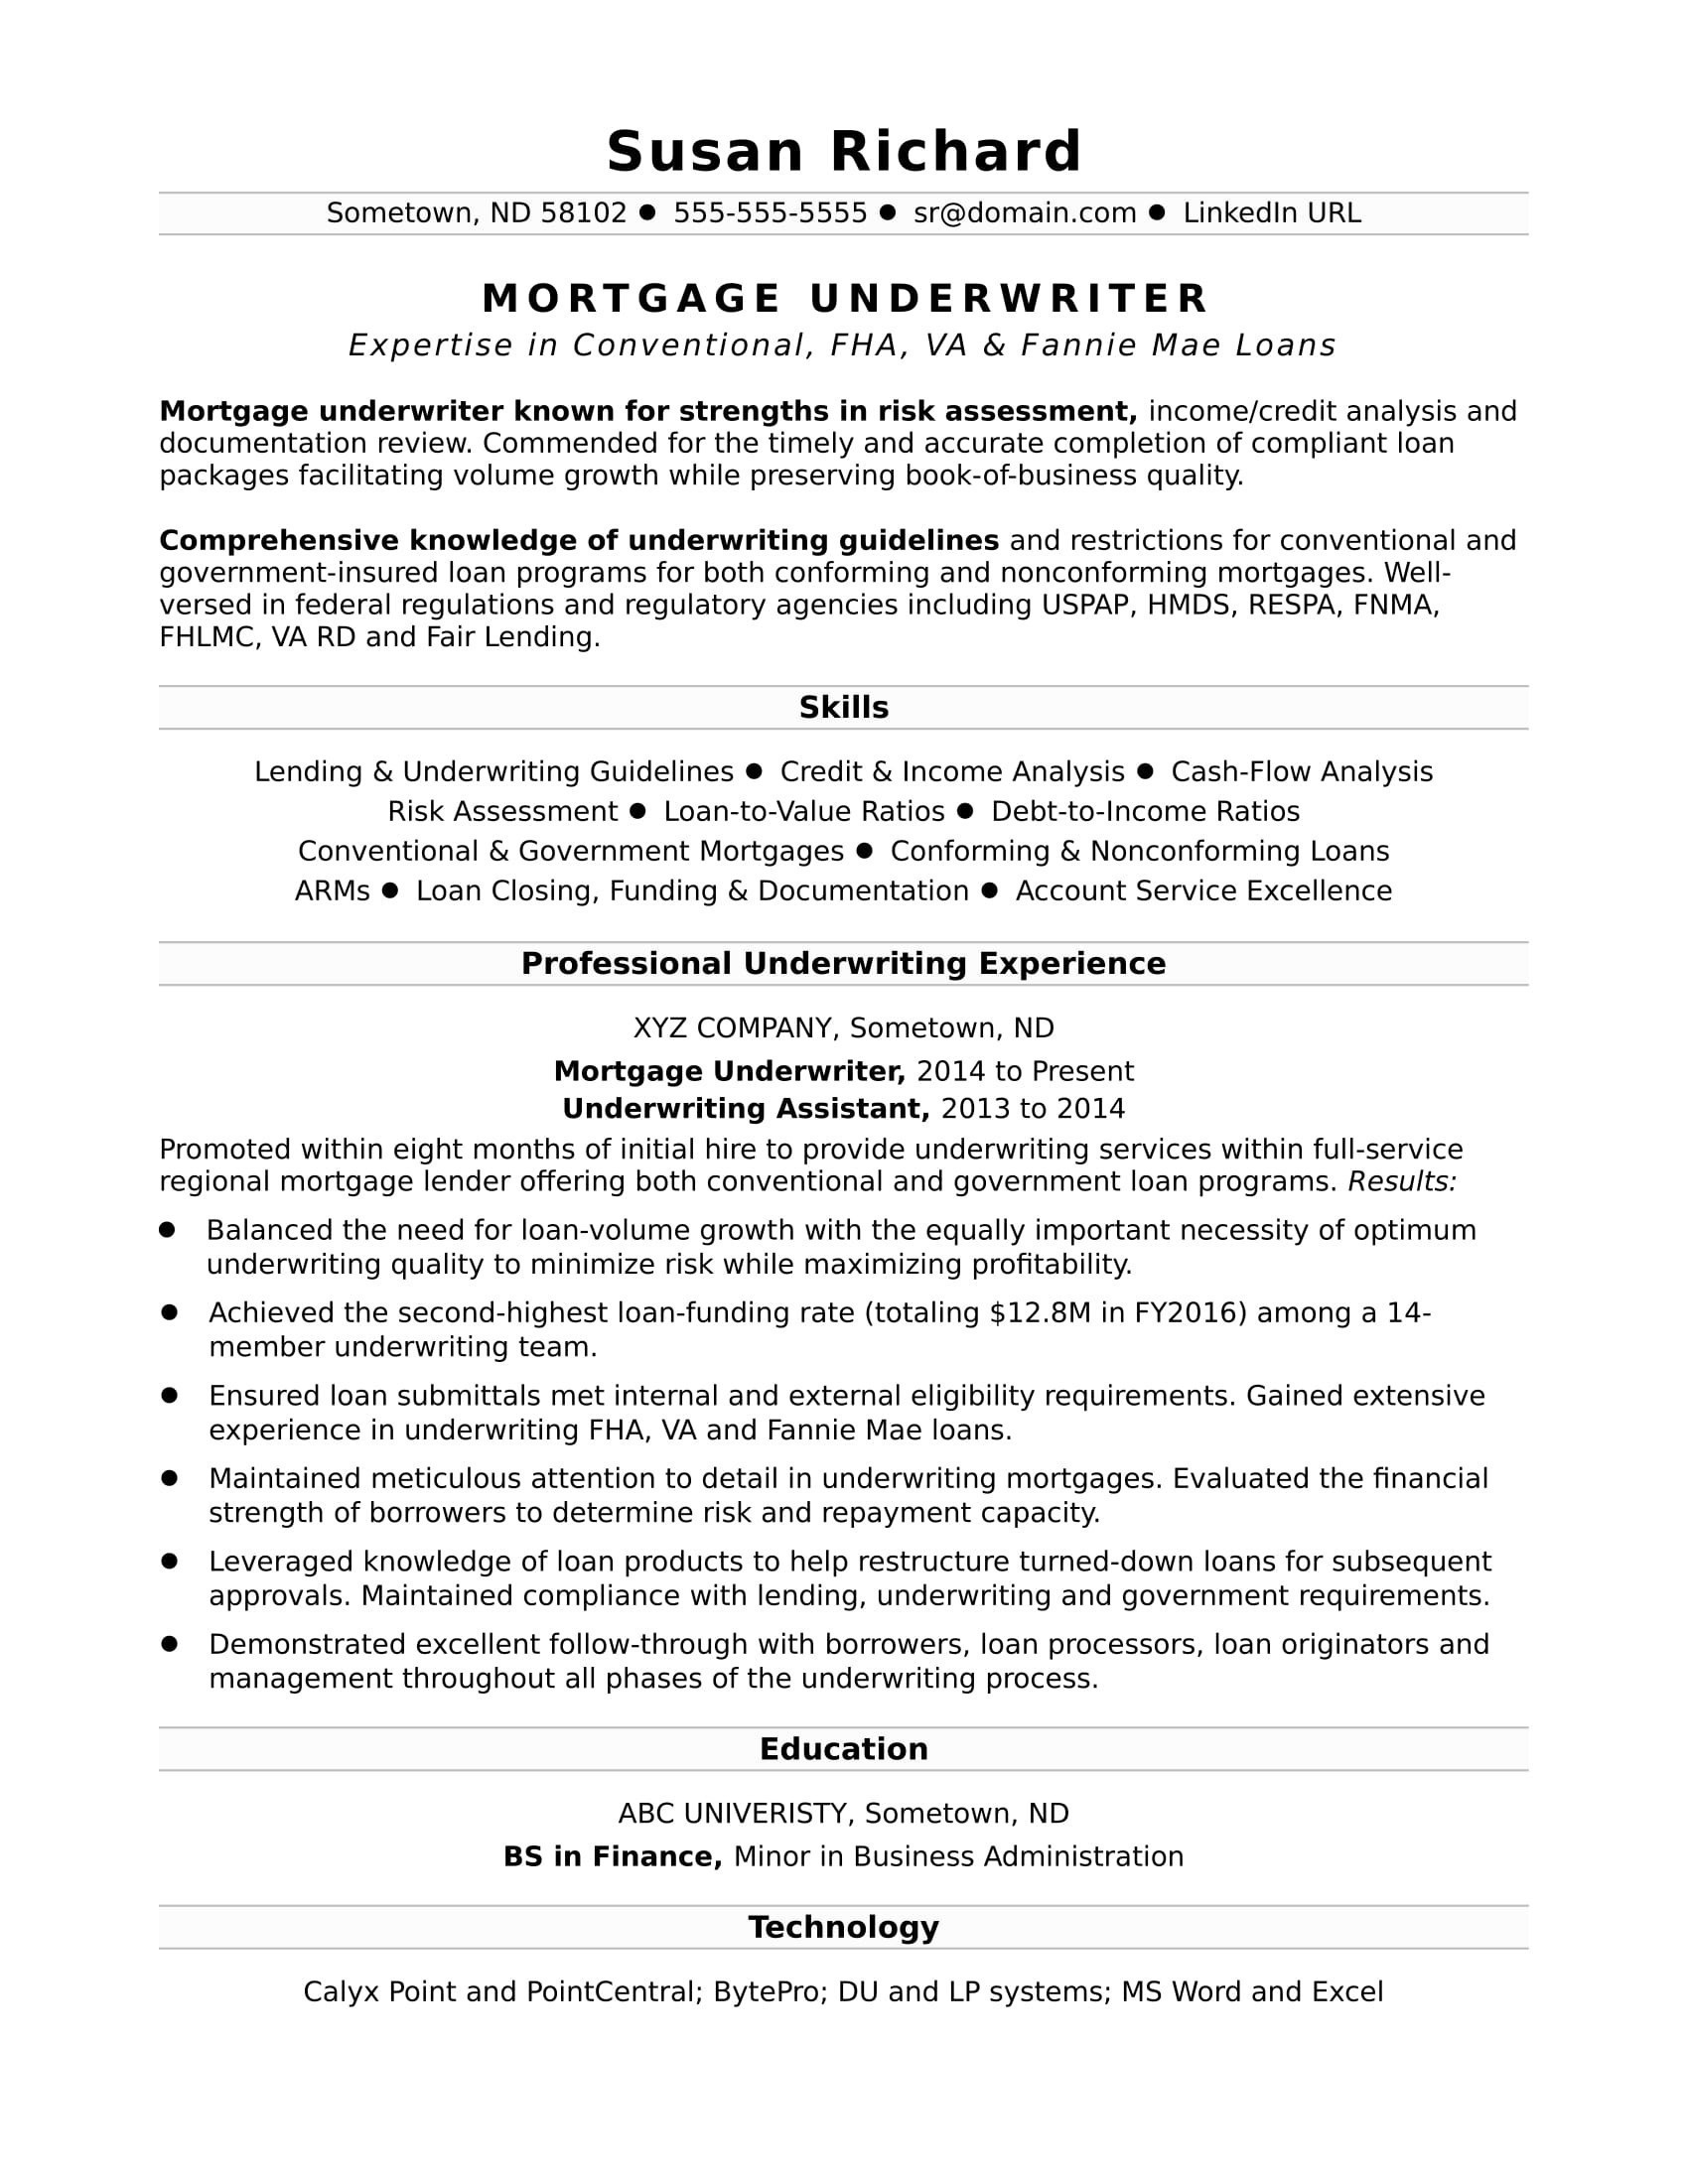 Resume Printing Near Me - Resumes Inspirational where Can I Print My Resume Near